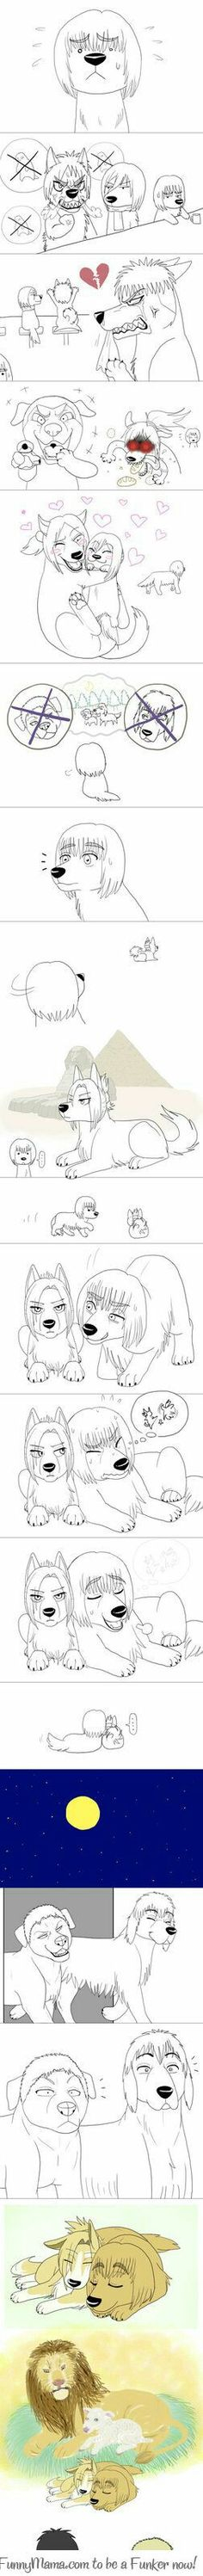 Annie x Armin---Still unsure where I stand with this pairing, but this is too cute not to post and it shows a lot of my other ships, so why not? The lion and the lamb, folks.